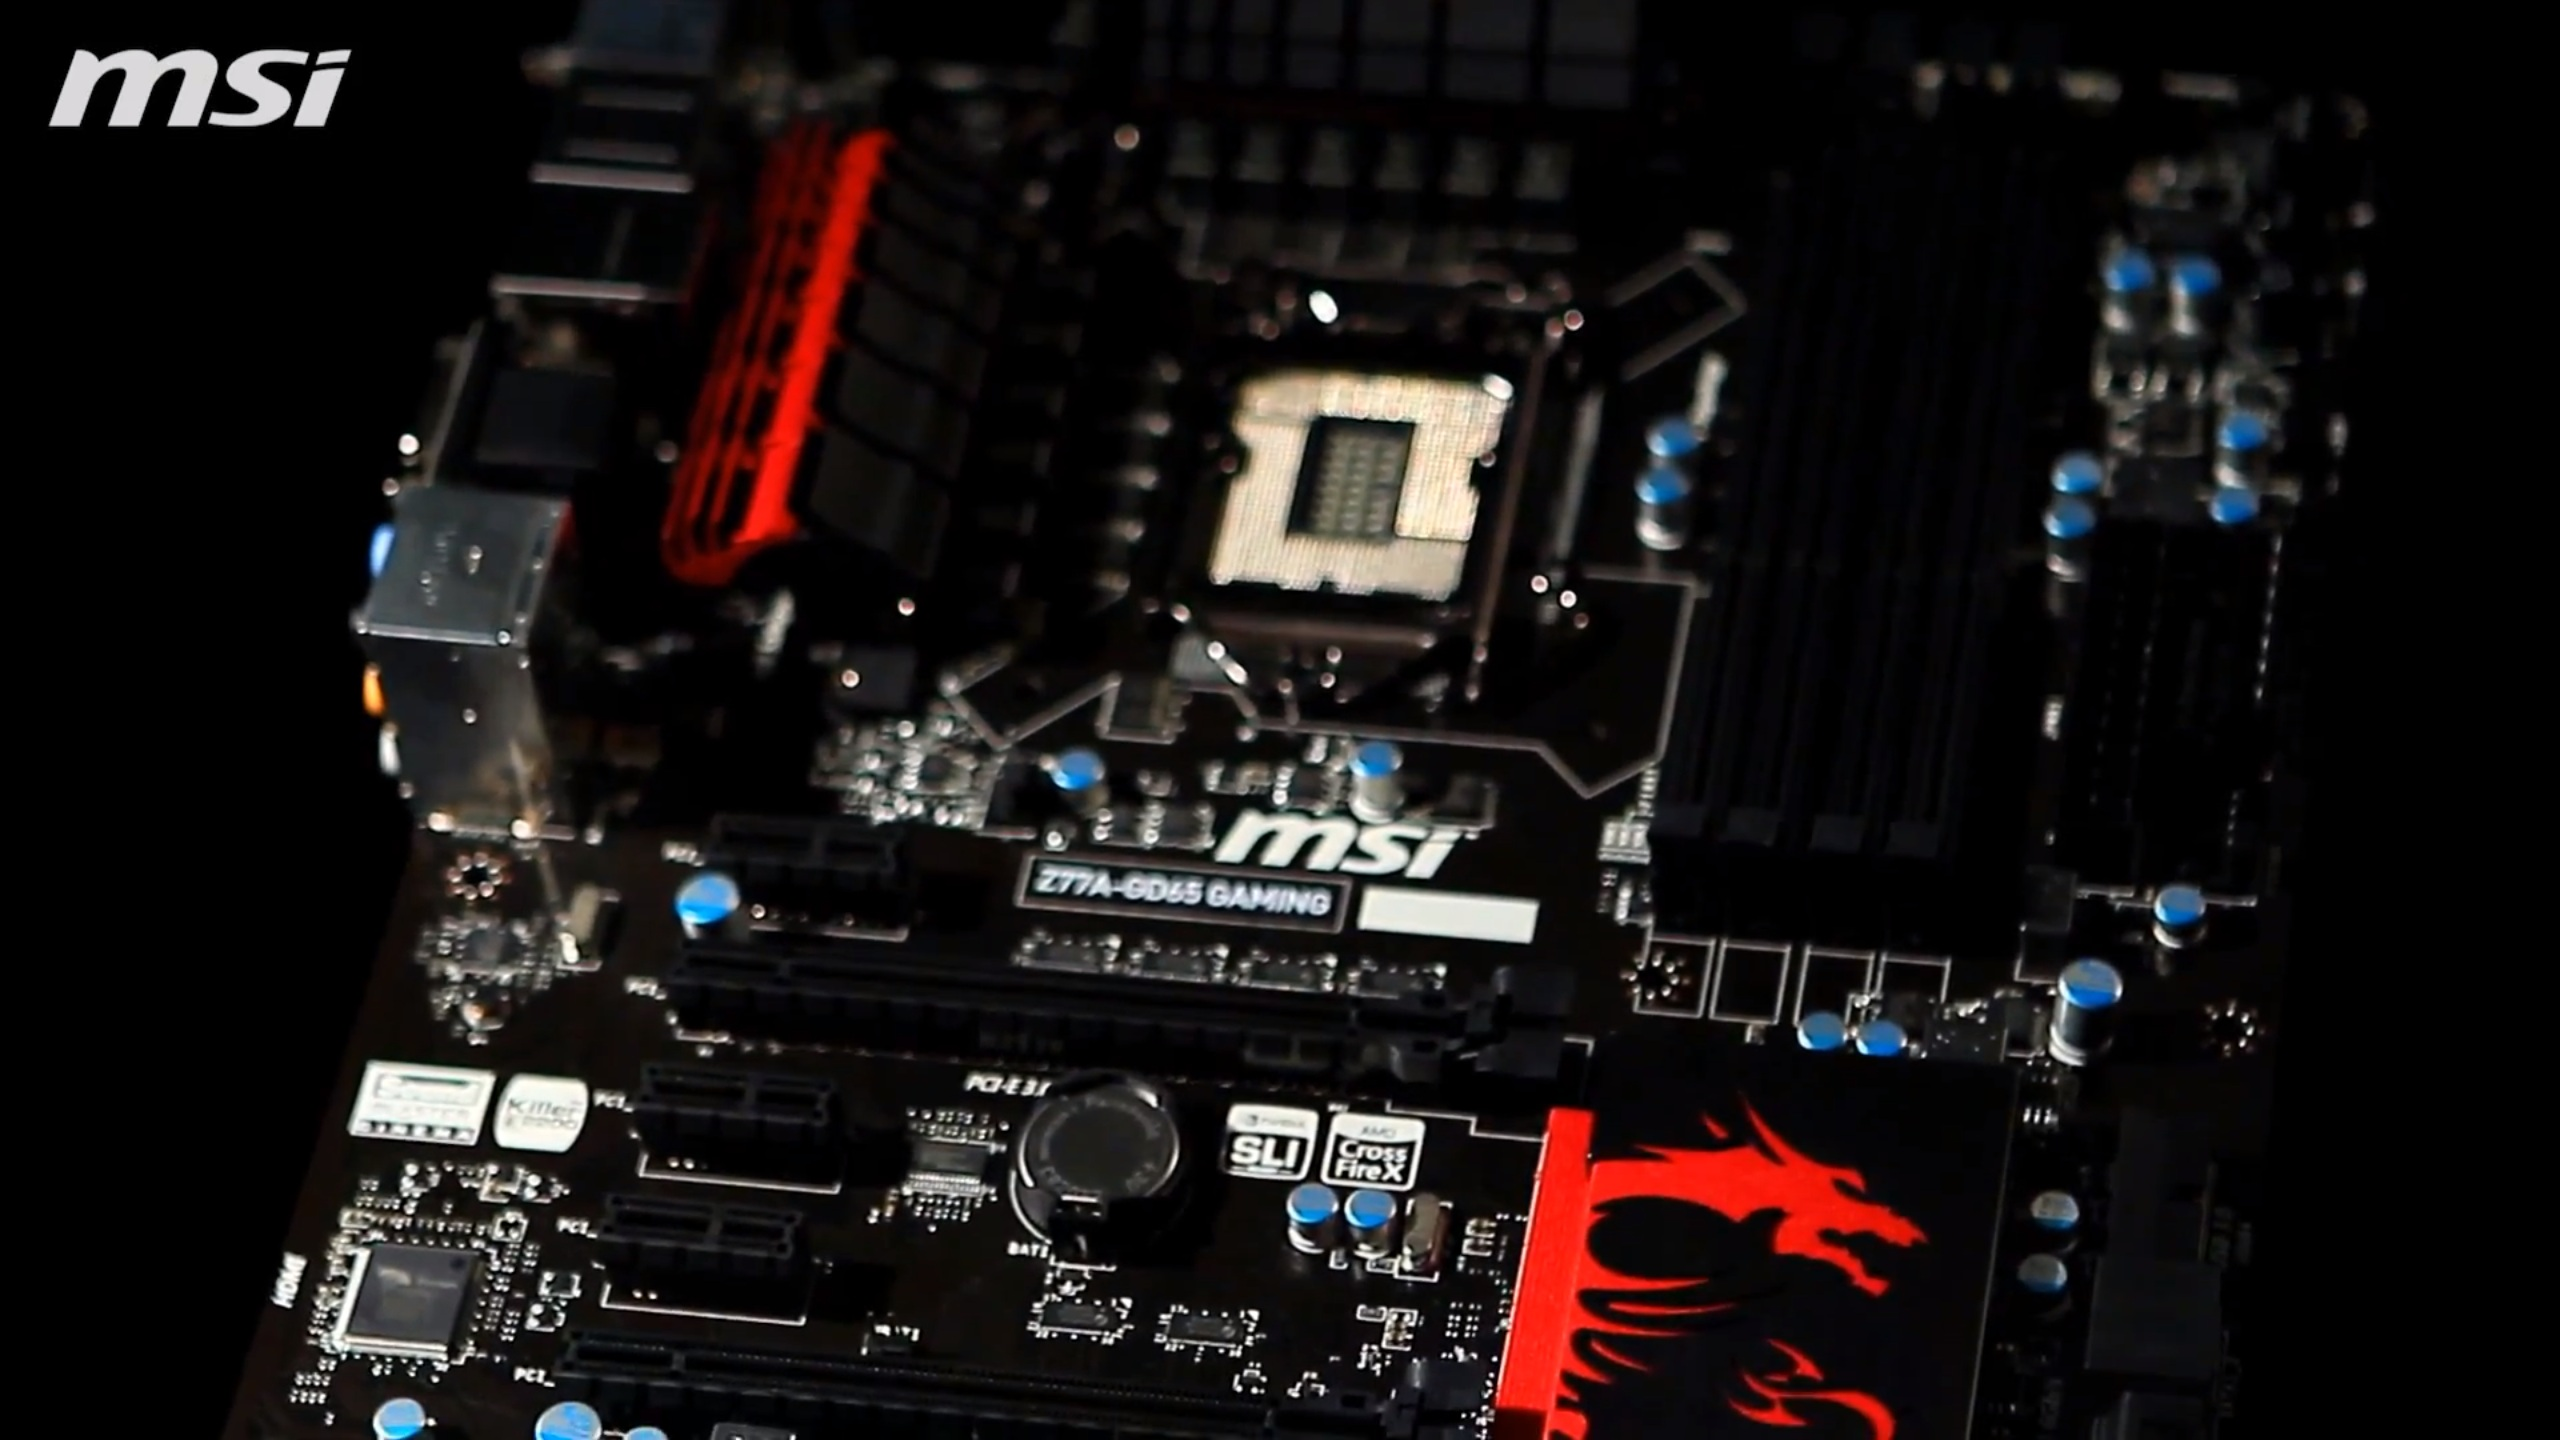 gigabyte motherboards computer wallpapers - photo #20